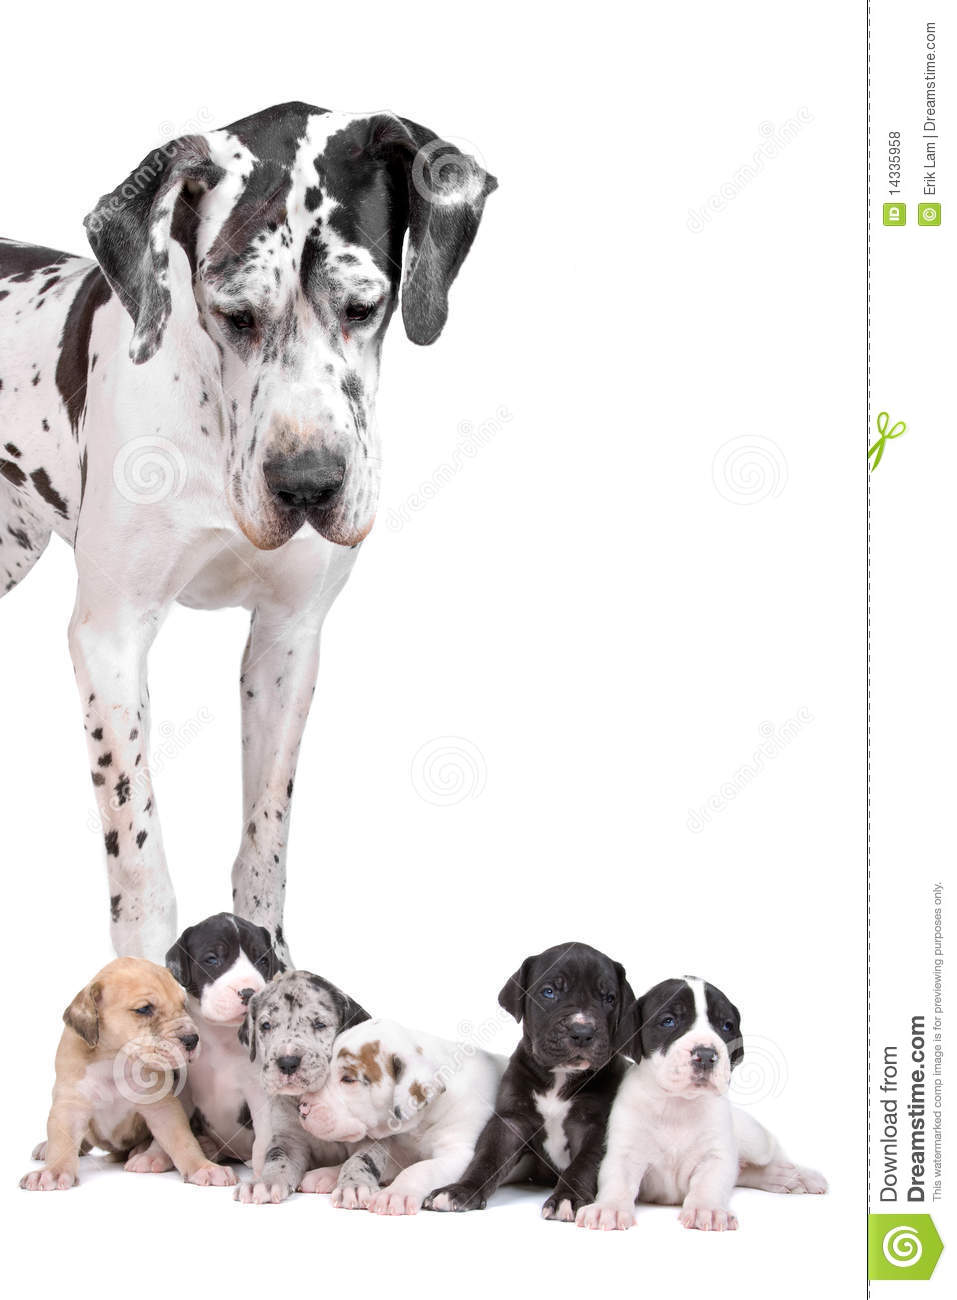 4 502 Great Dane Photos Free Royalty Free Stock Photos From Dreamstime